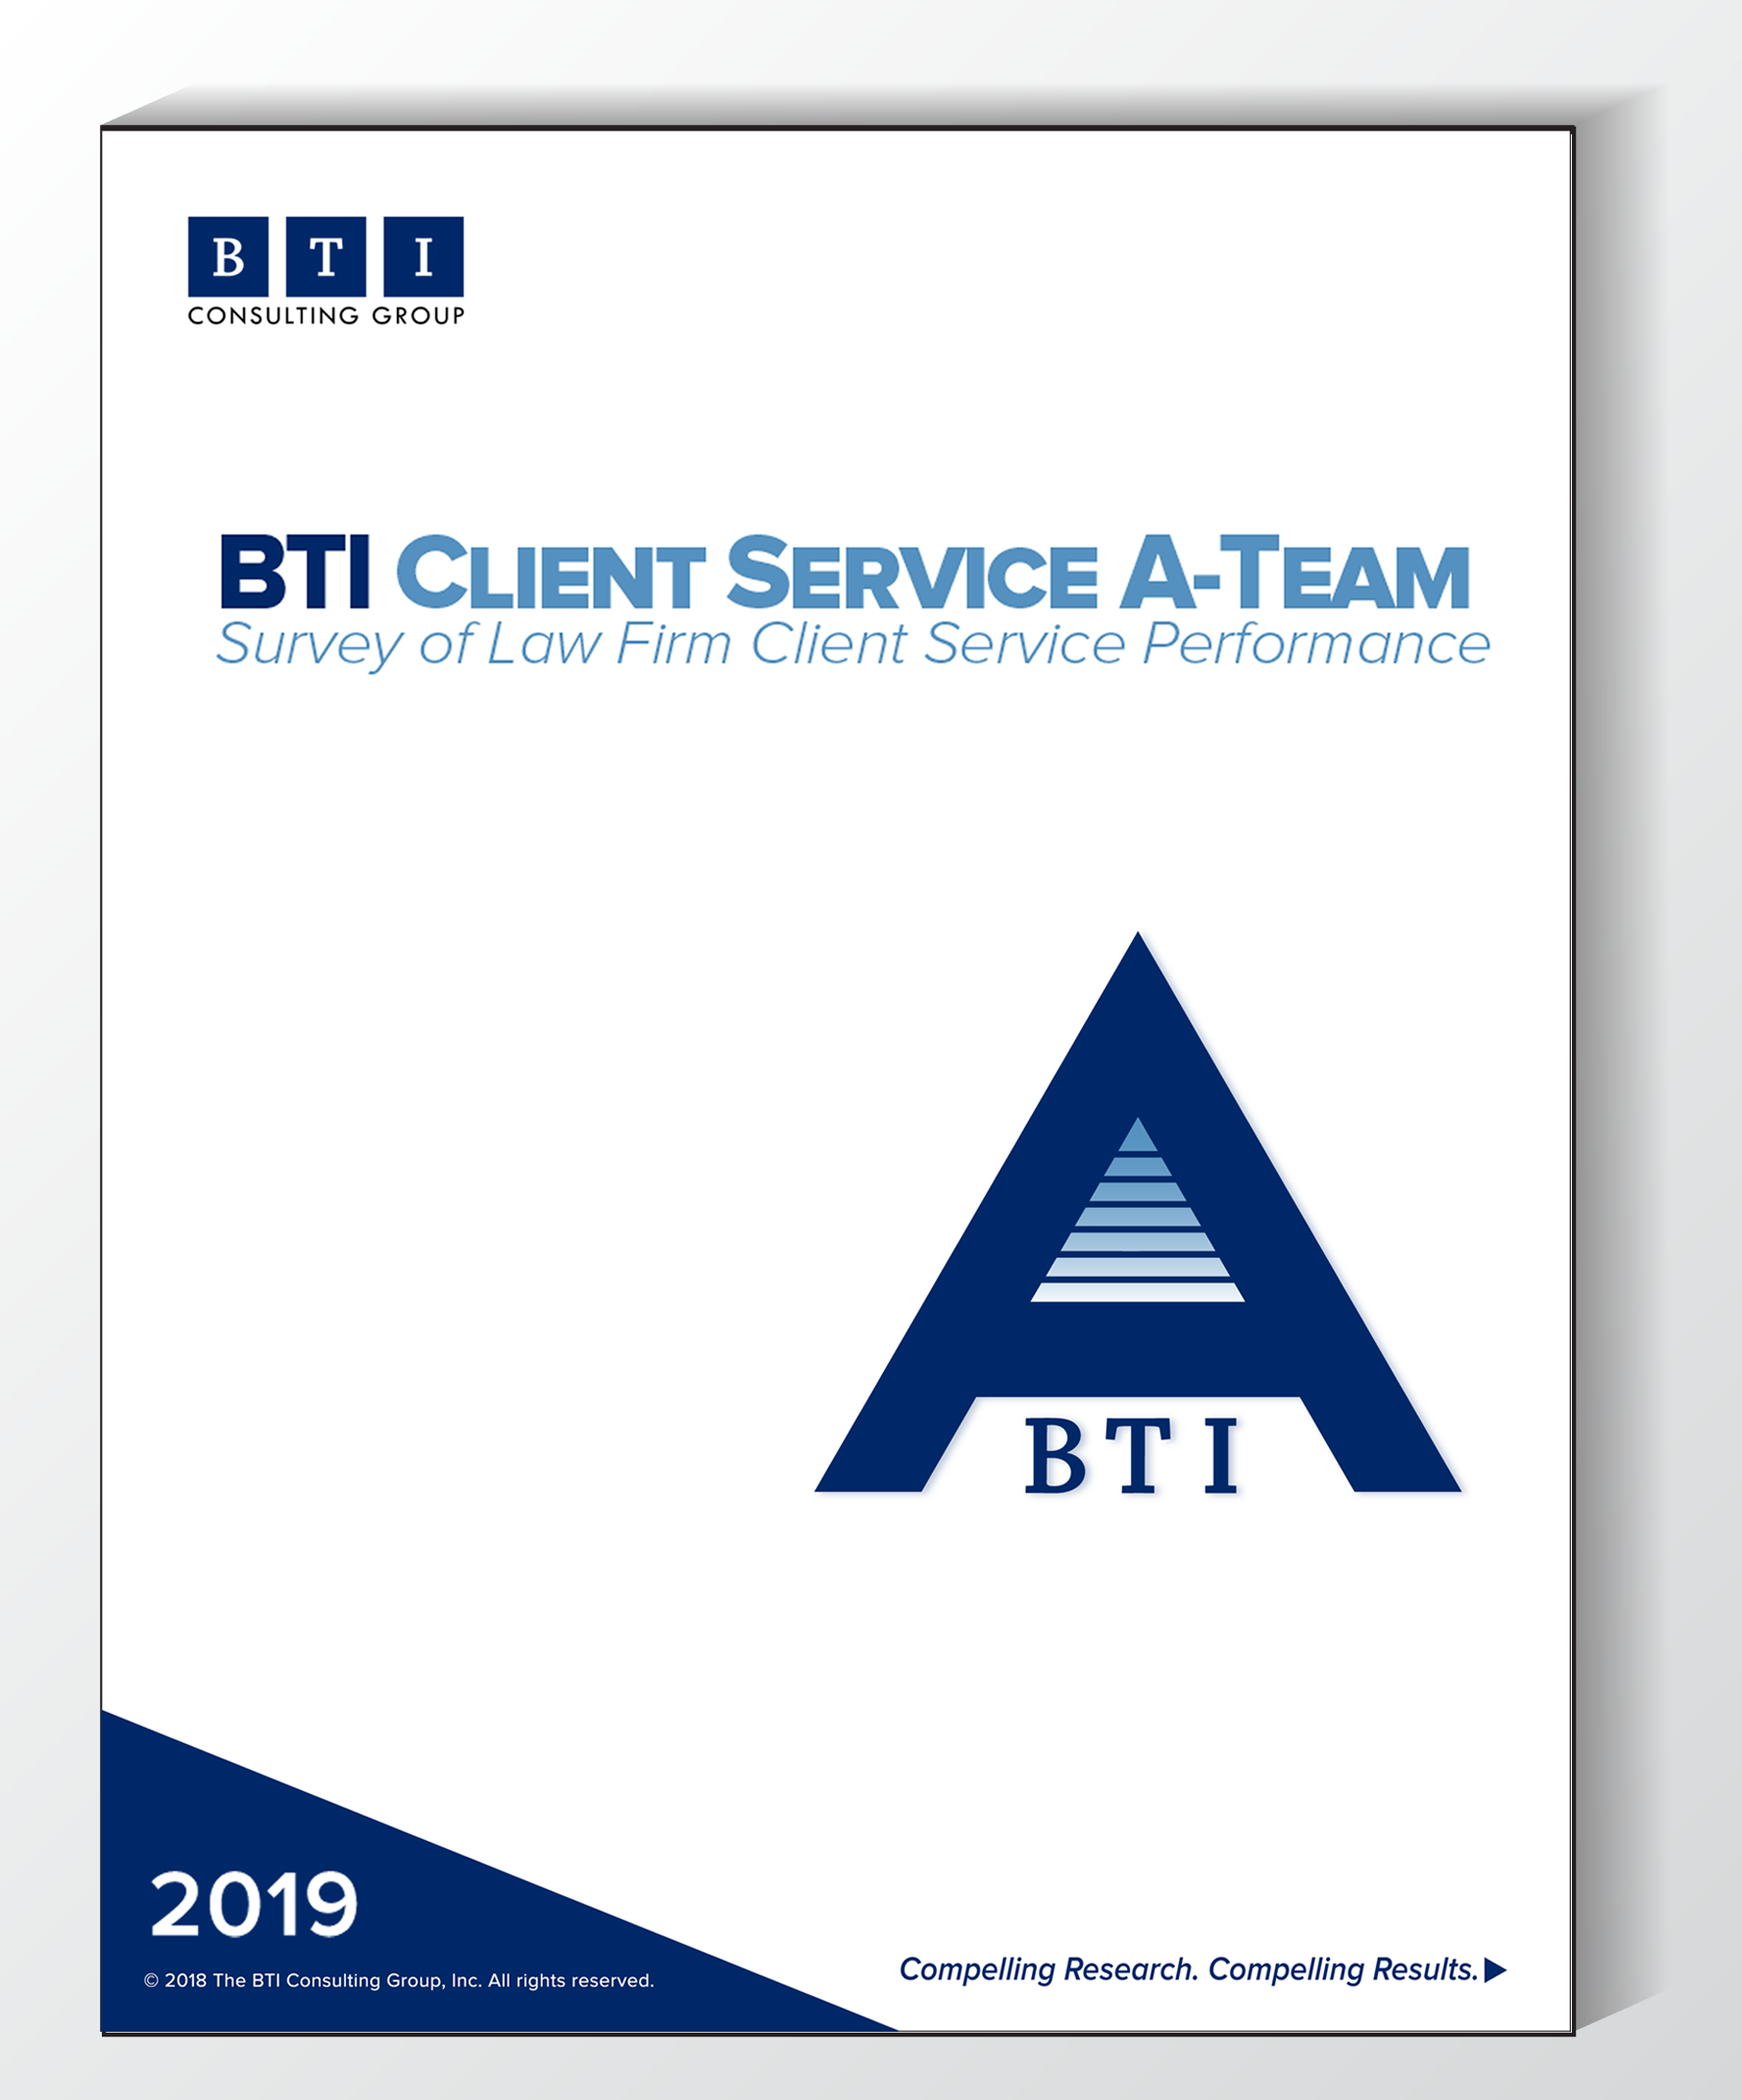 BTI_A Team 2019_Cover_Shadow.png